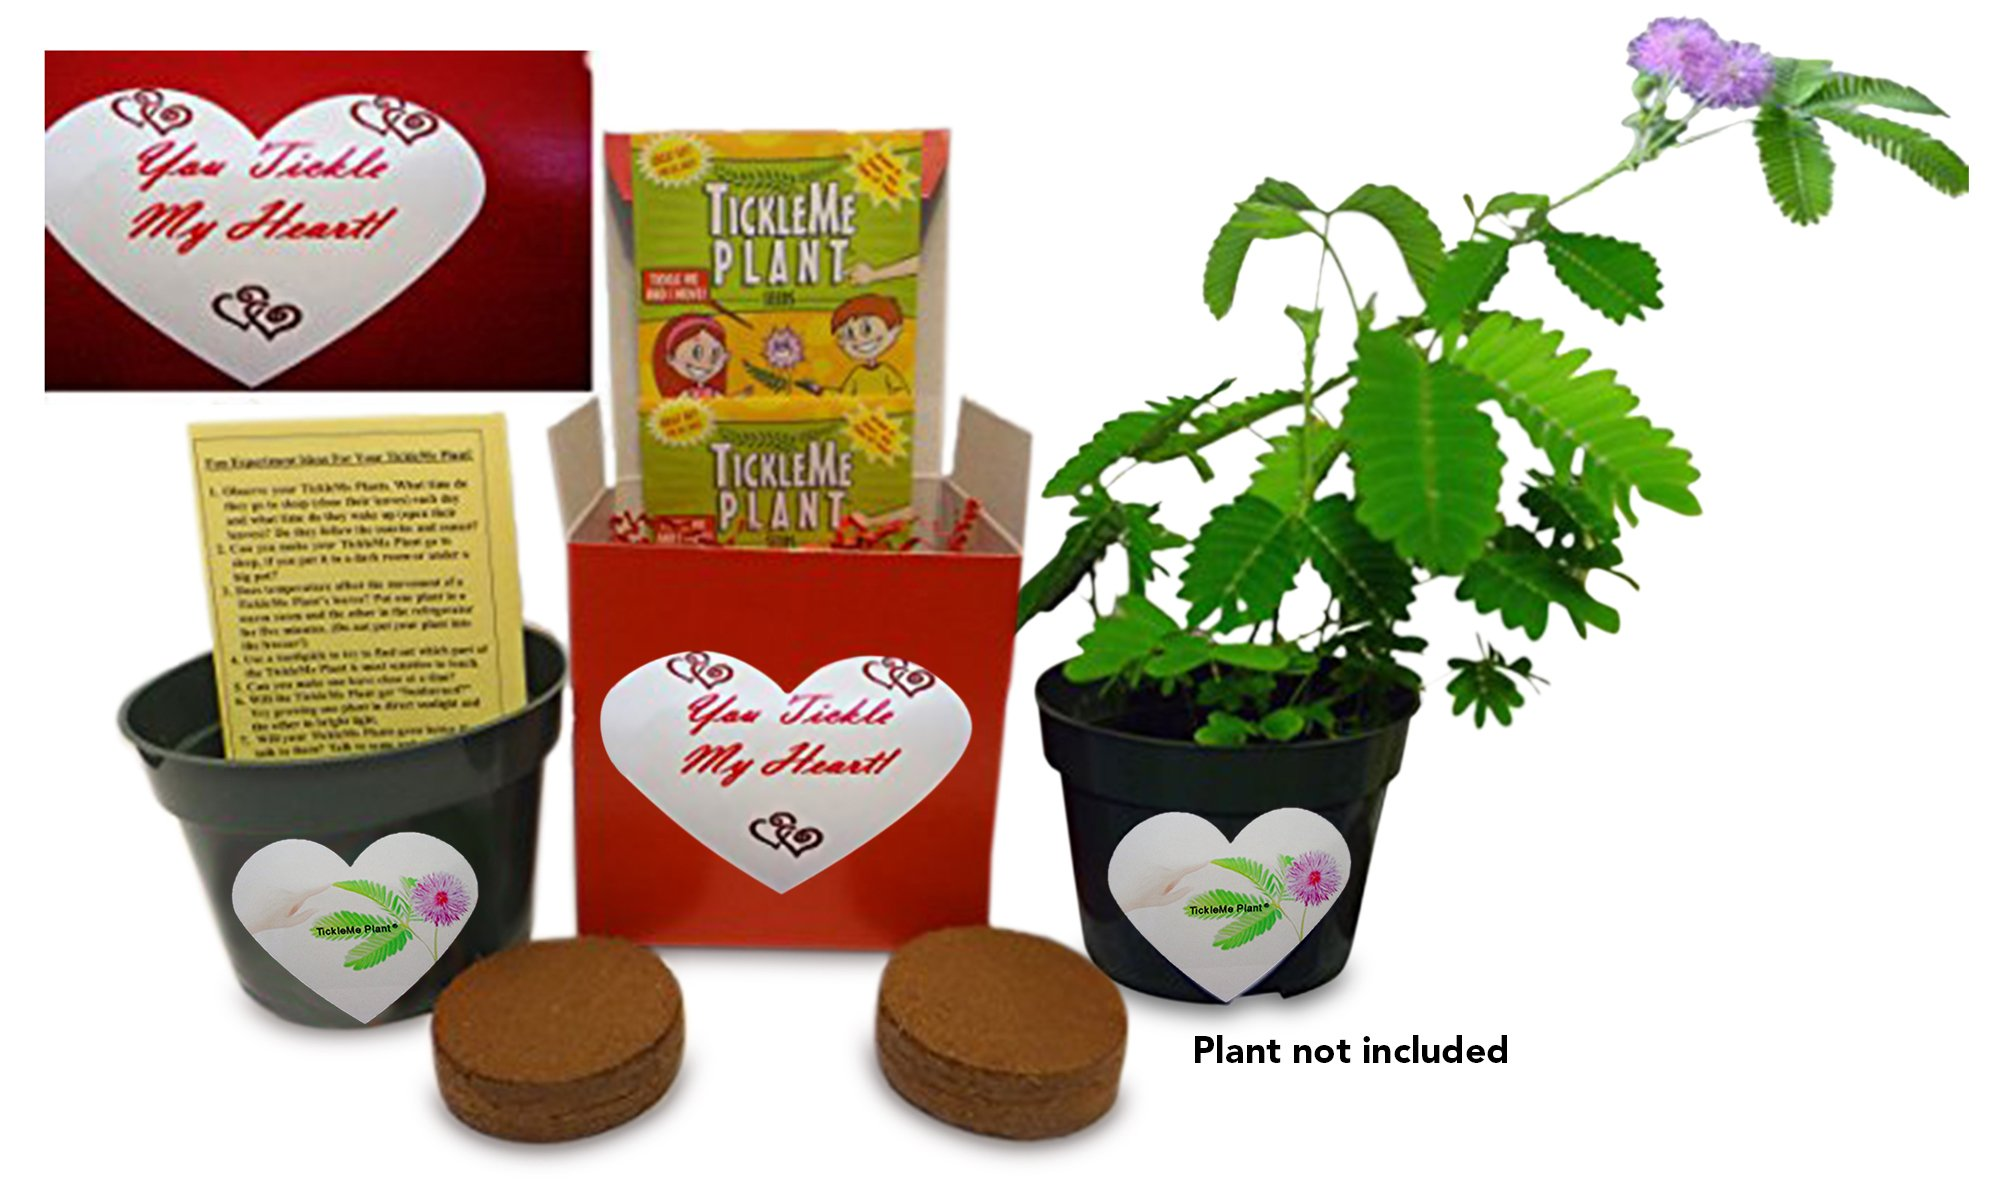 TickleMe Plant You Tickle My Heart Box - Share Growing The Plant That Closes its Leaves When Tickled or When Blown a Kiss. It Also Flowers by TickleMe Plant